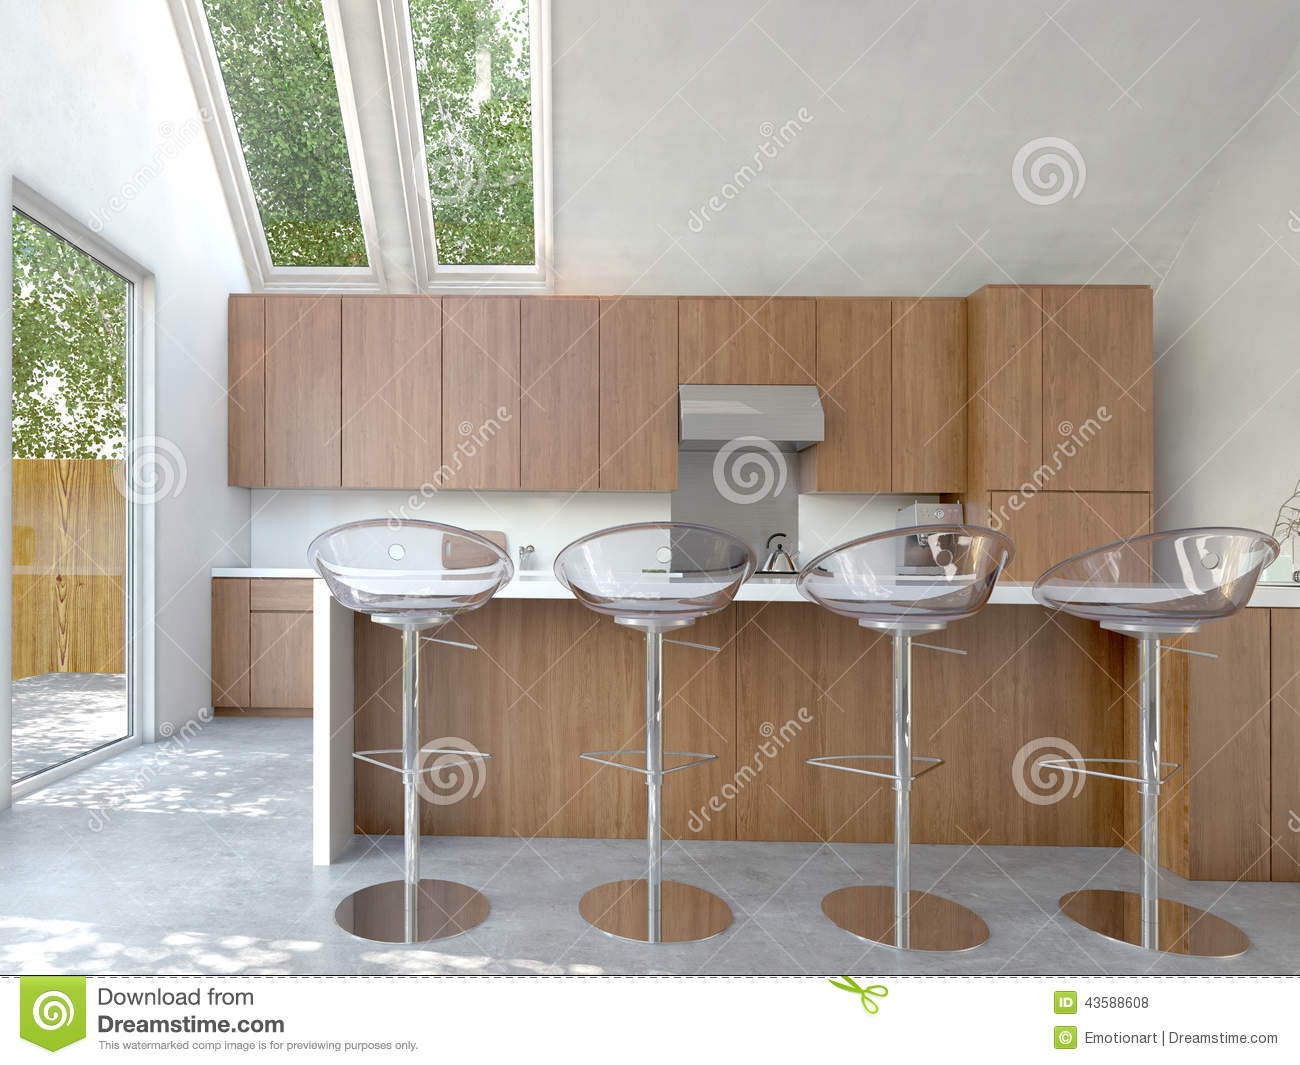 Small Modular Open Kitchen : Small compact open-plan kitchen or kitchenette interior with wooden ...